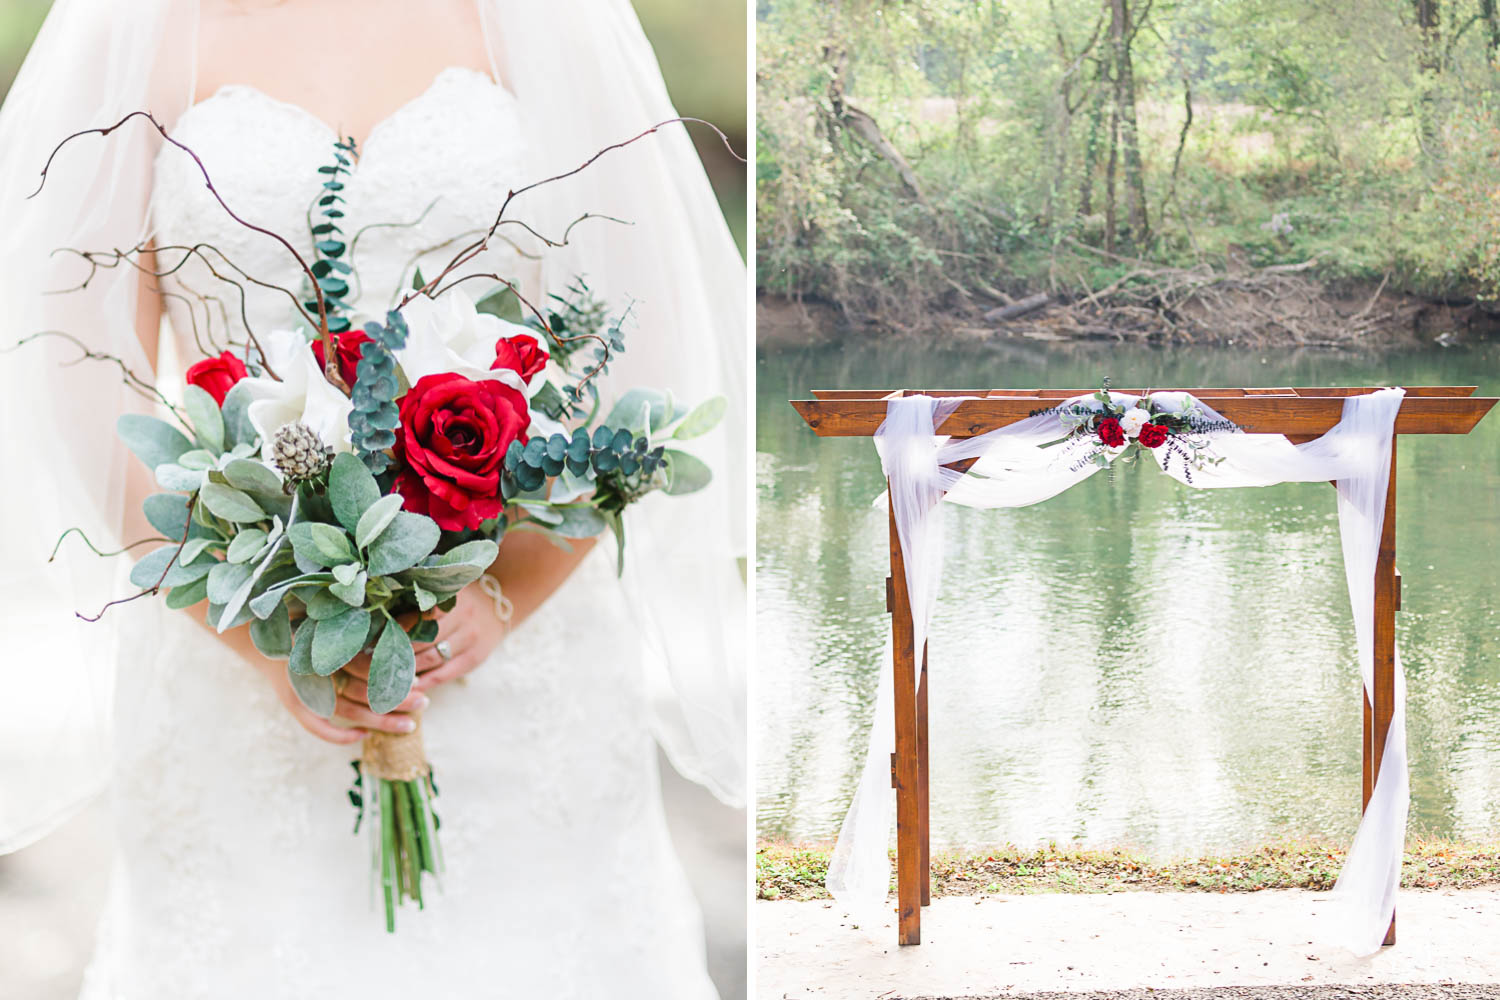 bold red, white and greenery wedding bouquet. And wedding arbor with simple draping and flowers in front of the river.